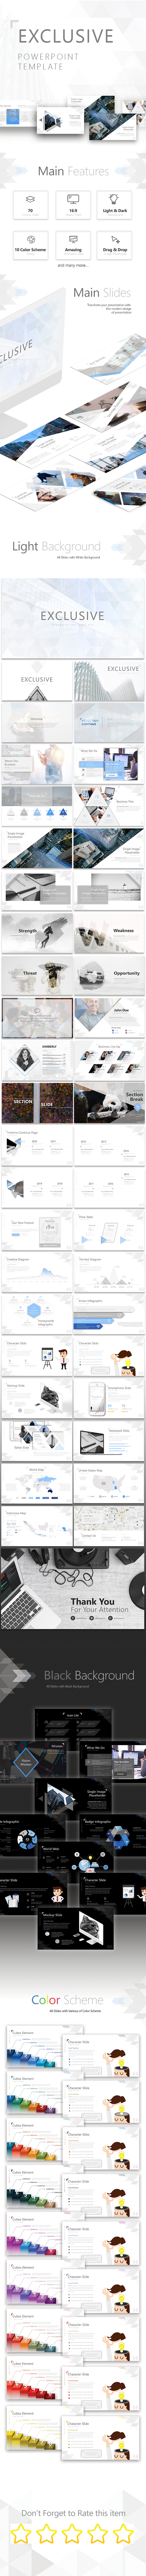 GraphicRiver Exclusive Powerpoint Template 20454440